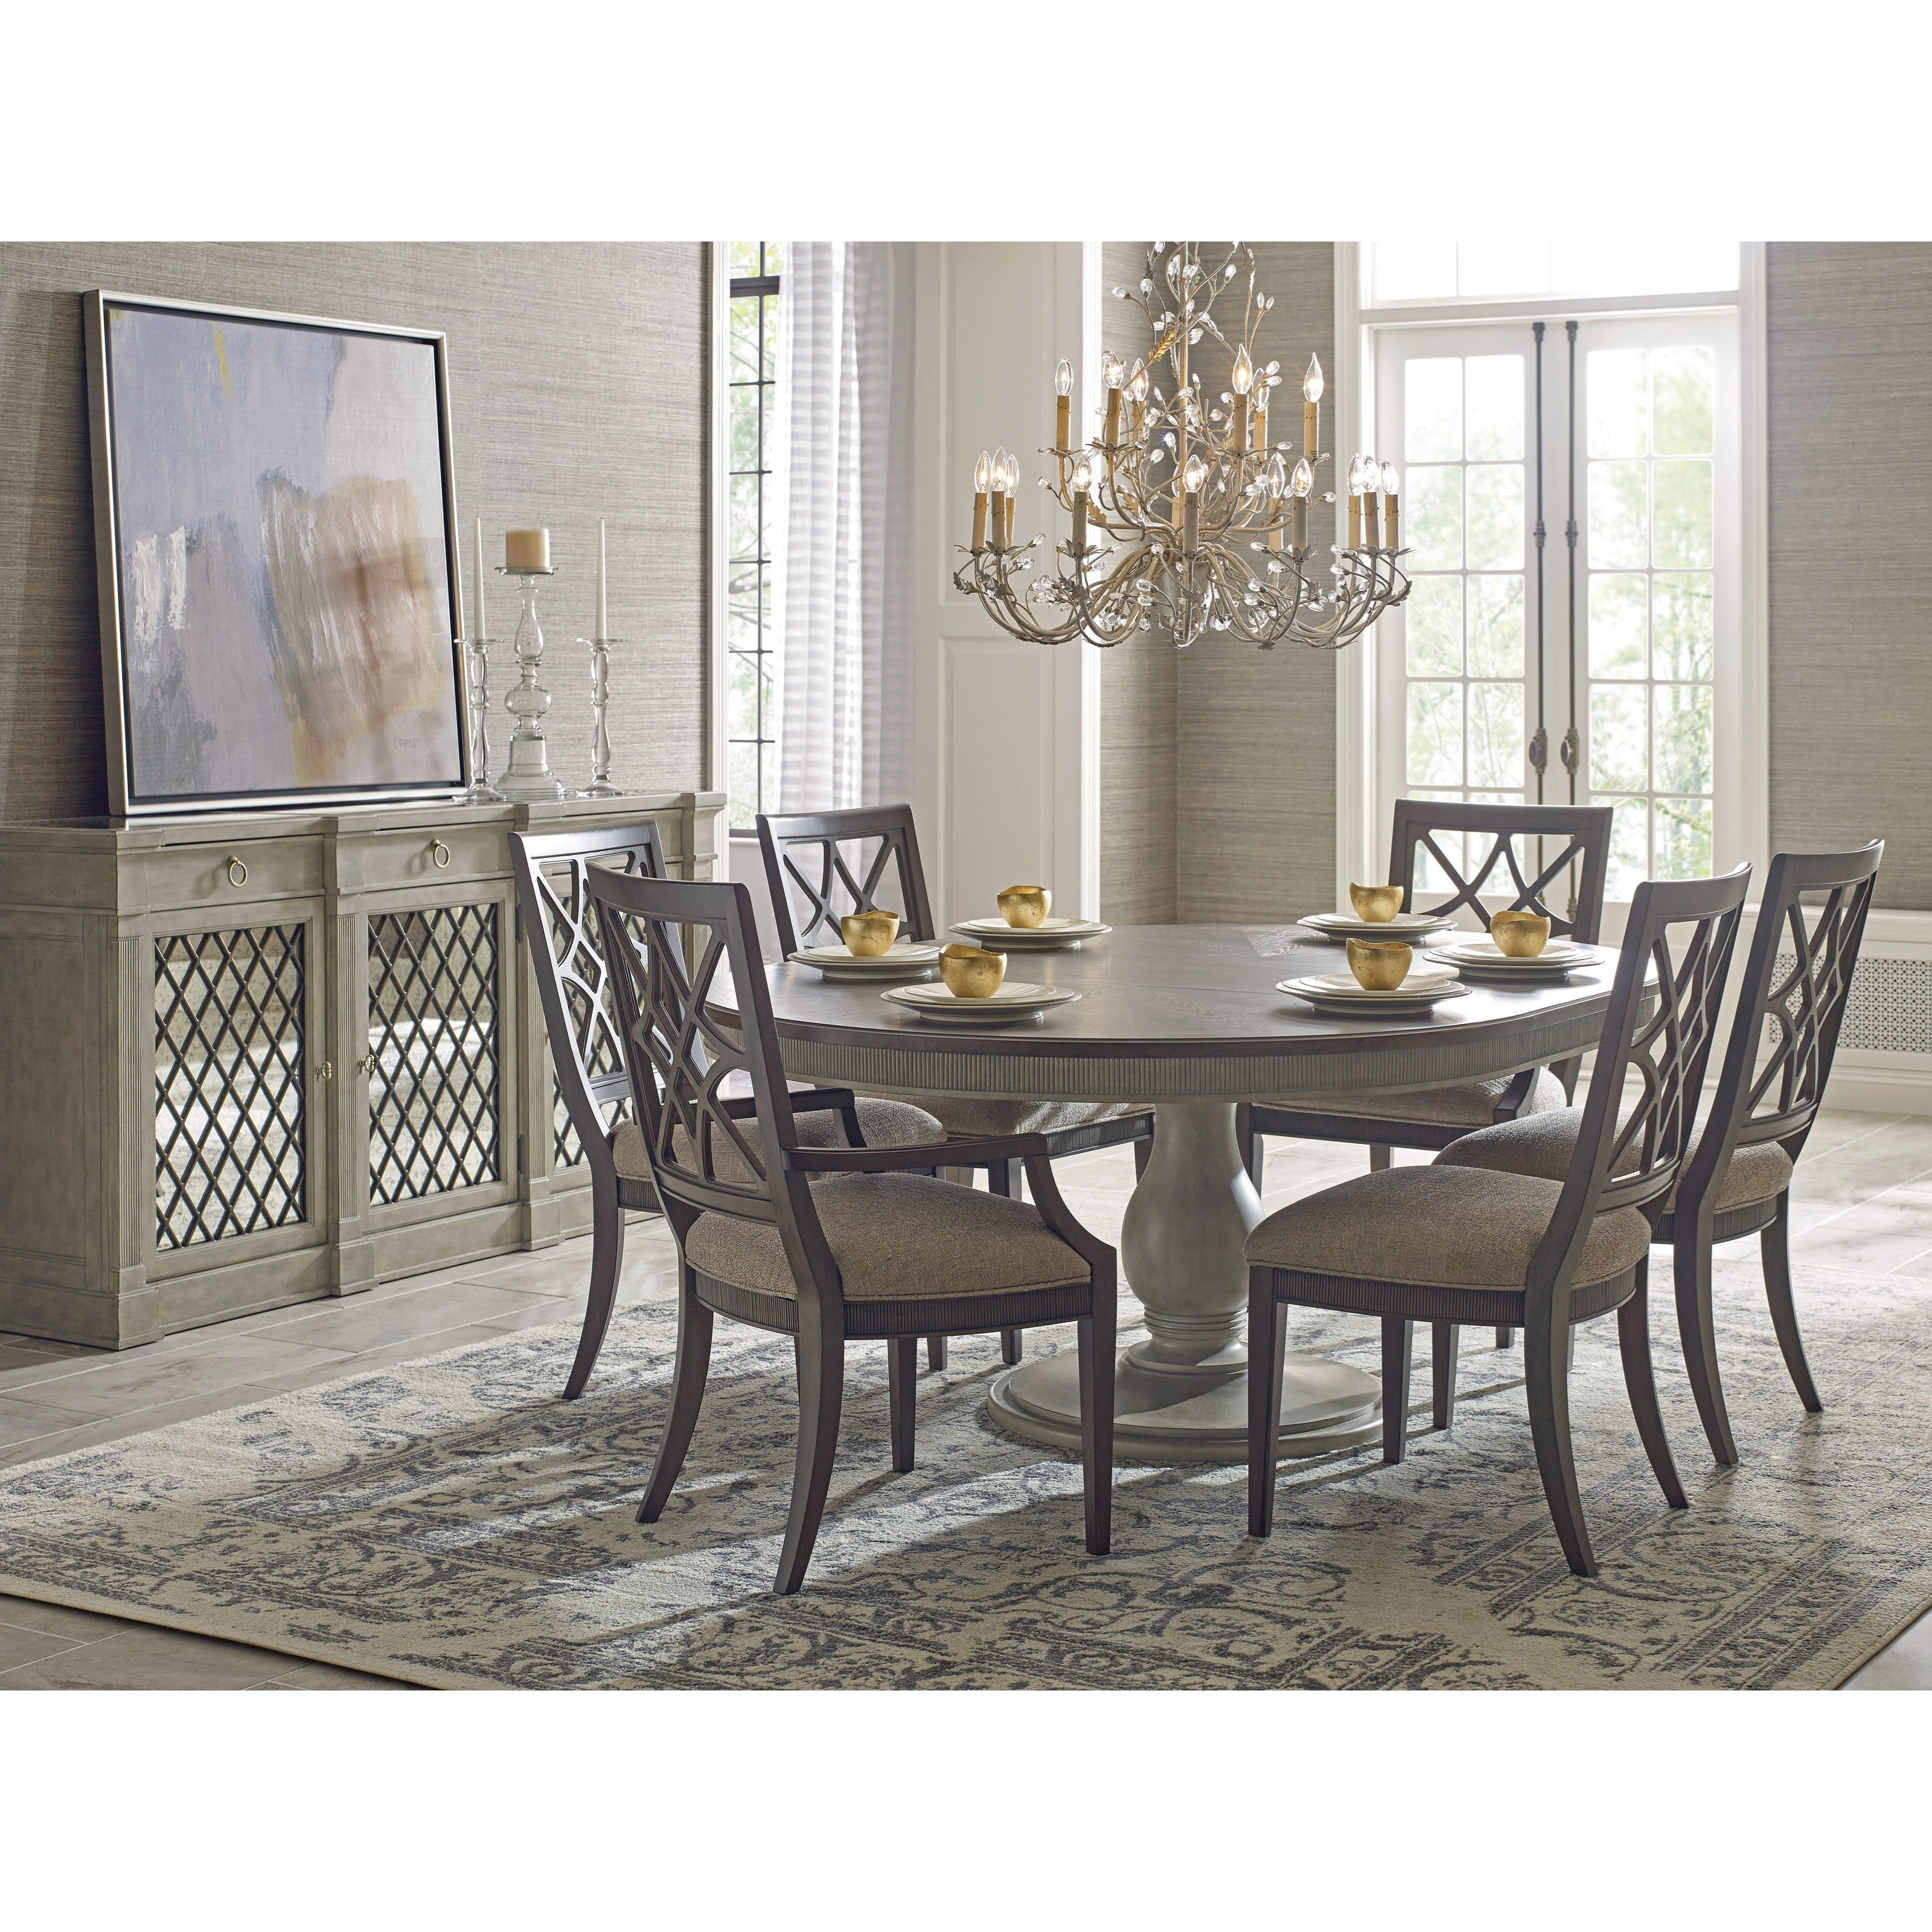 American Drew Dining Room Furniture: American Drew Savona Octavia Dining Table